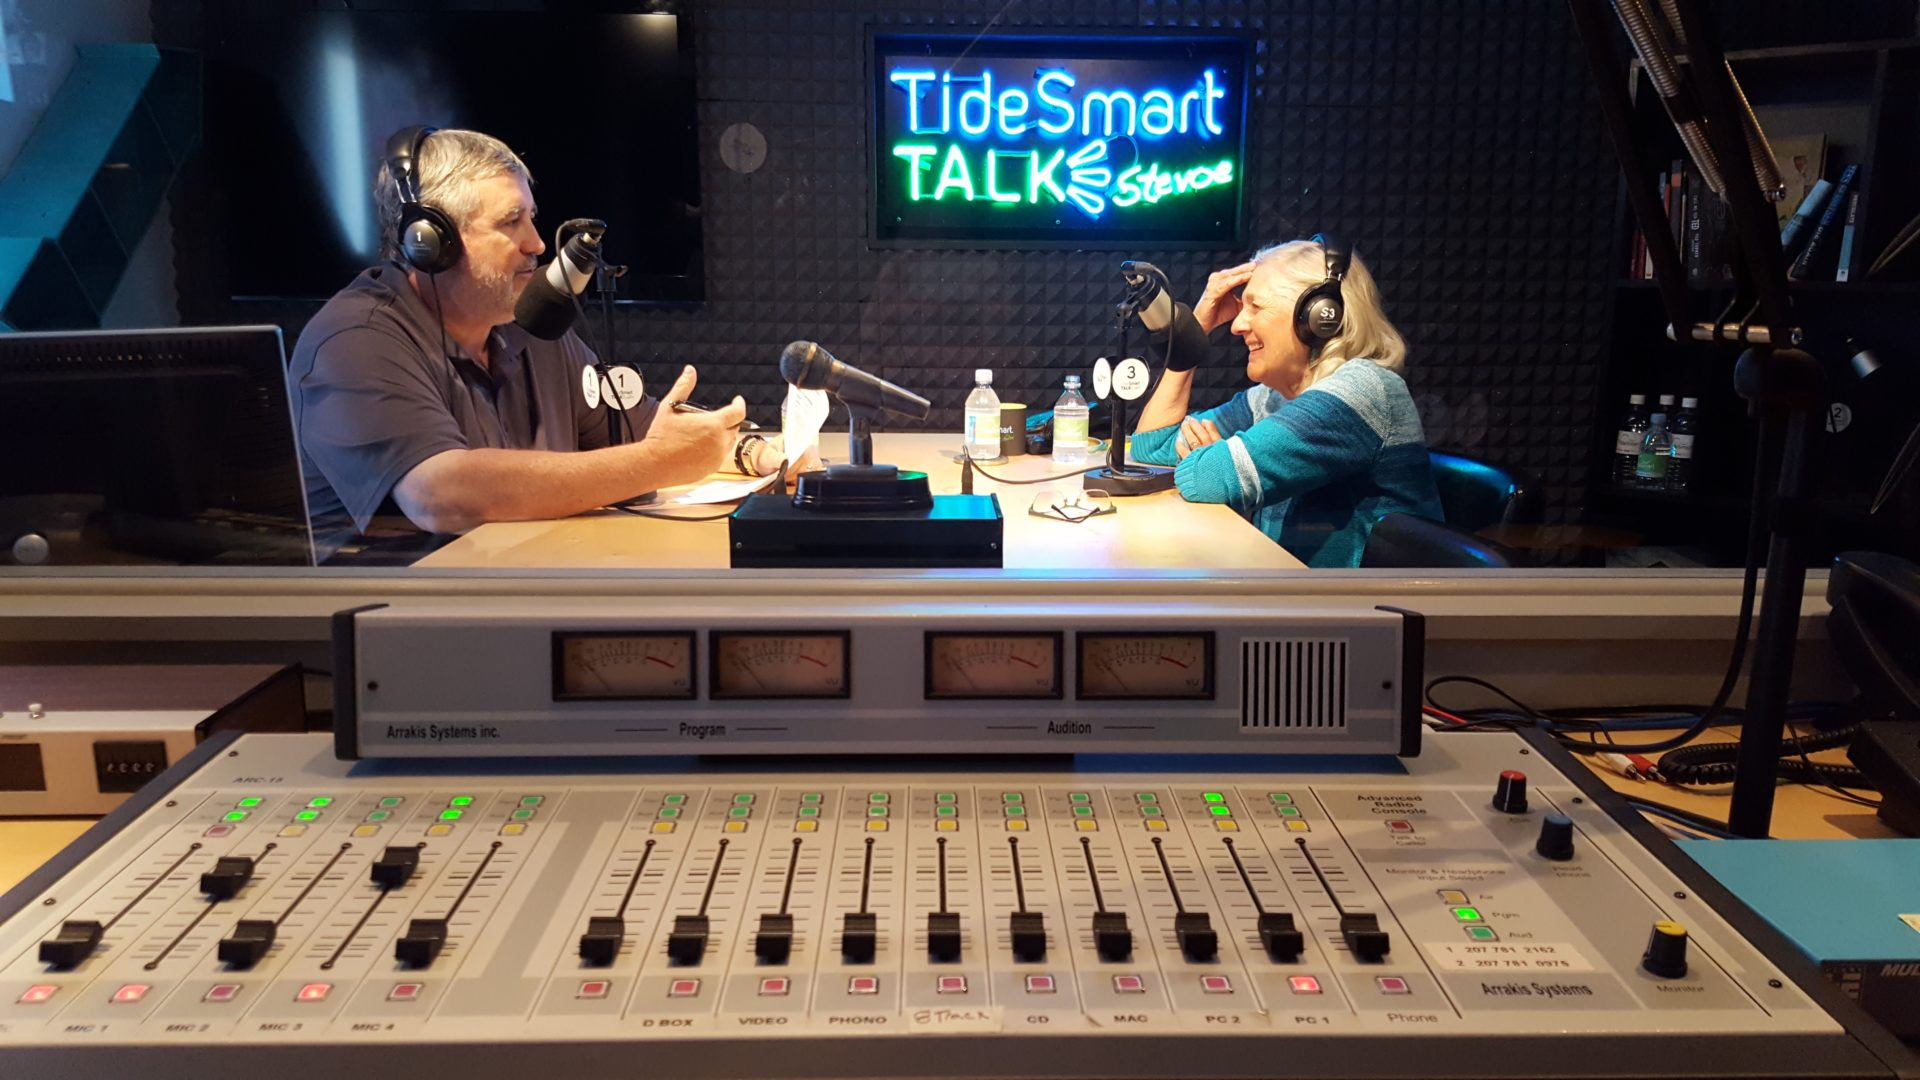 Host of TideSmart Talk with Stevoe, Steve Woods, welcomed Ellen Goodman (at right).